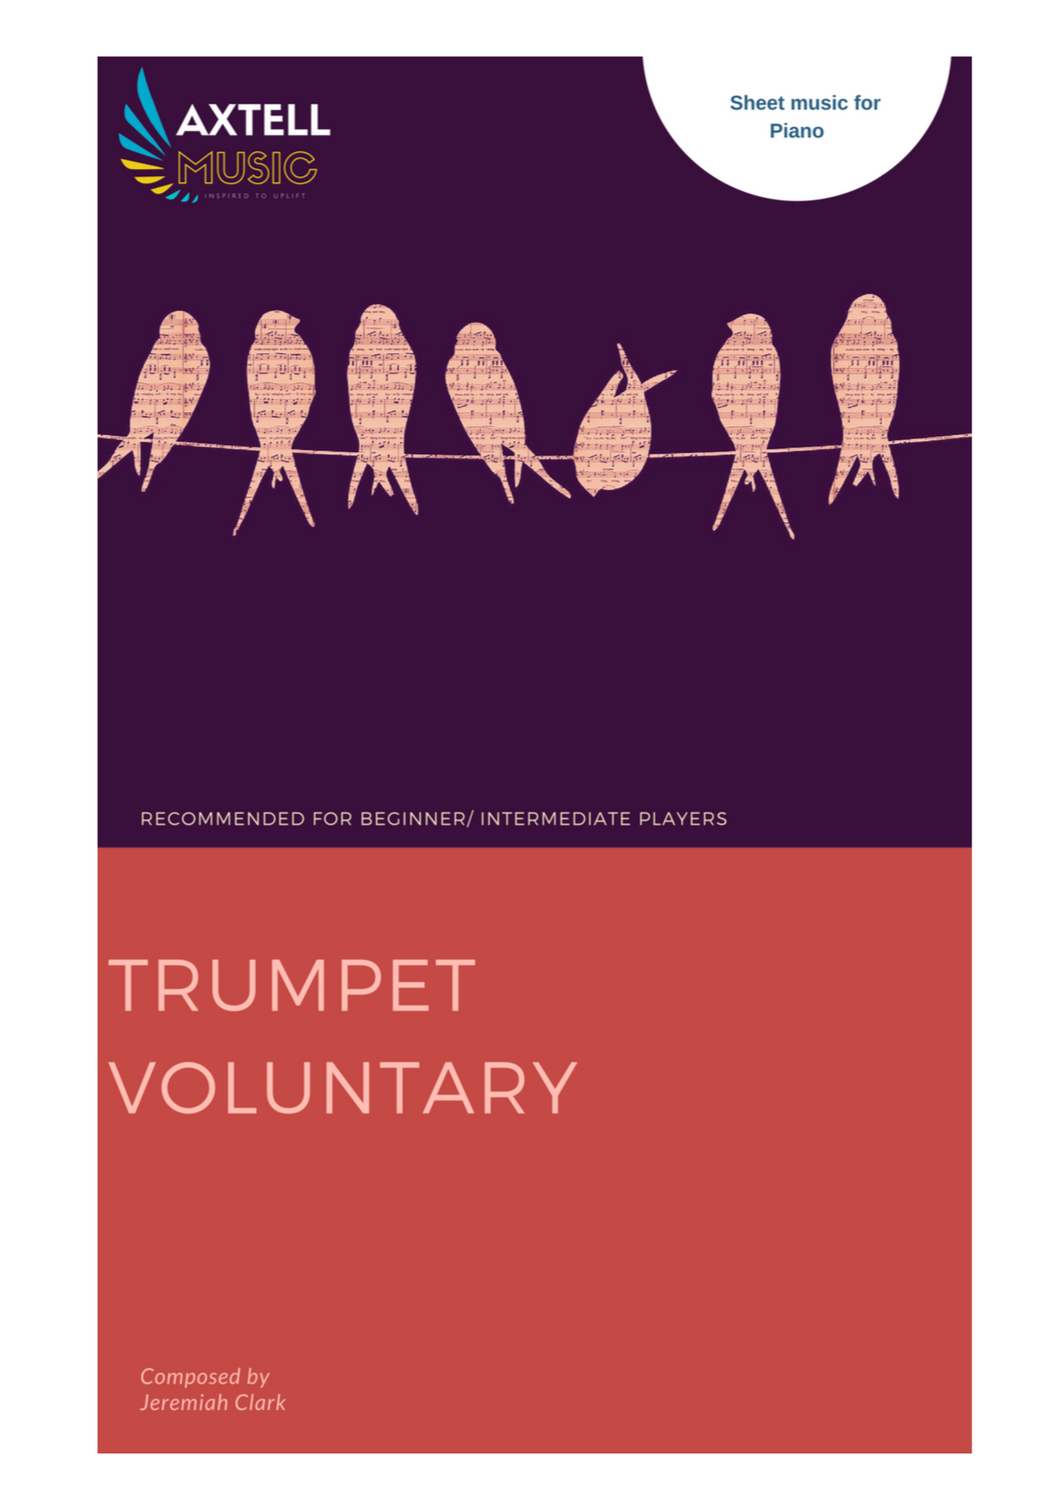 Cover art for Trumpet Voluntary sheet music composed by Jeremiah Clark. Arranged for Piano to download and print.